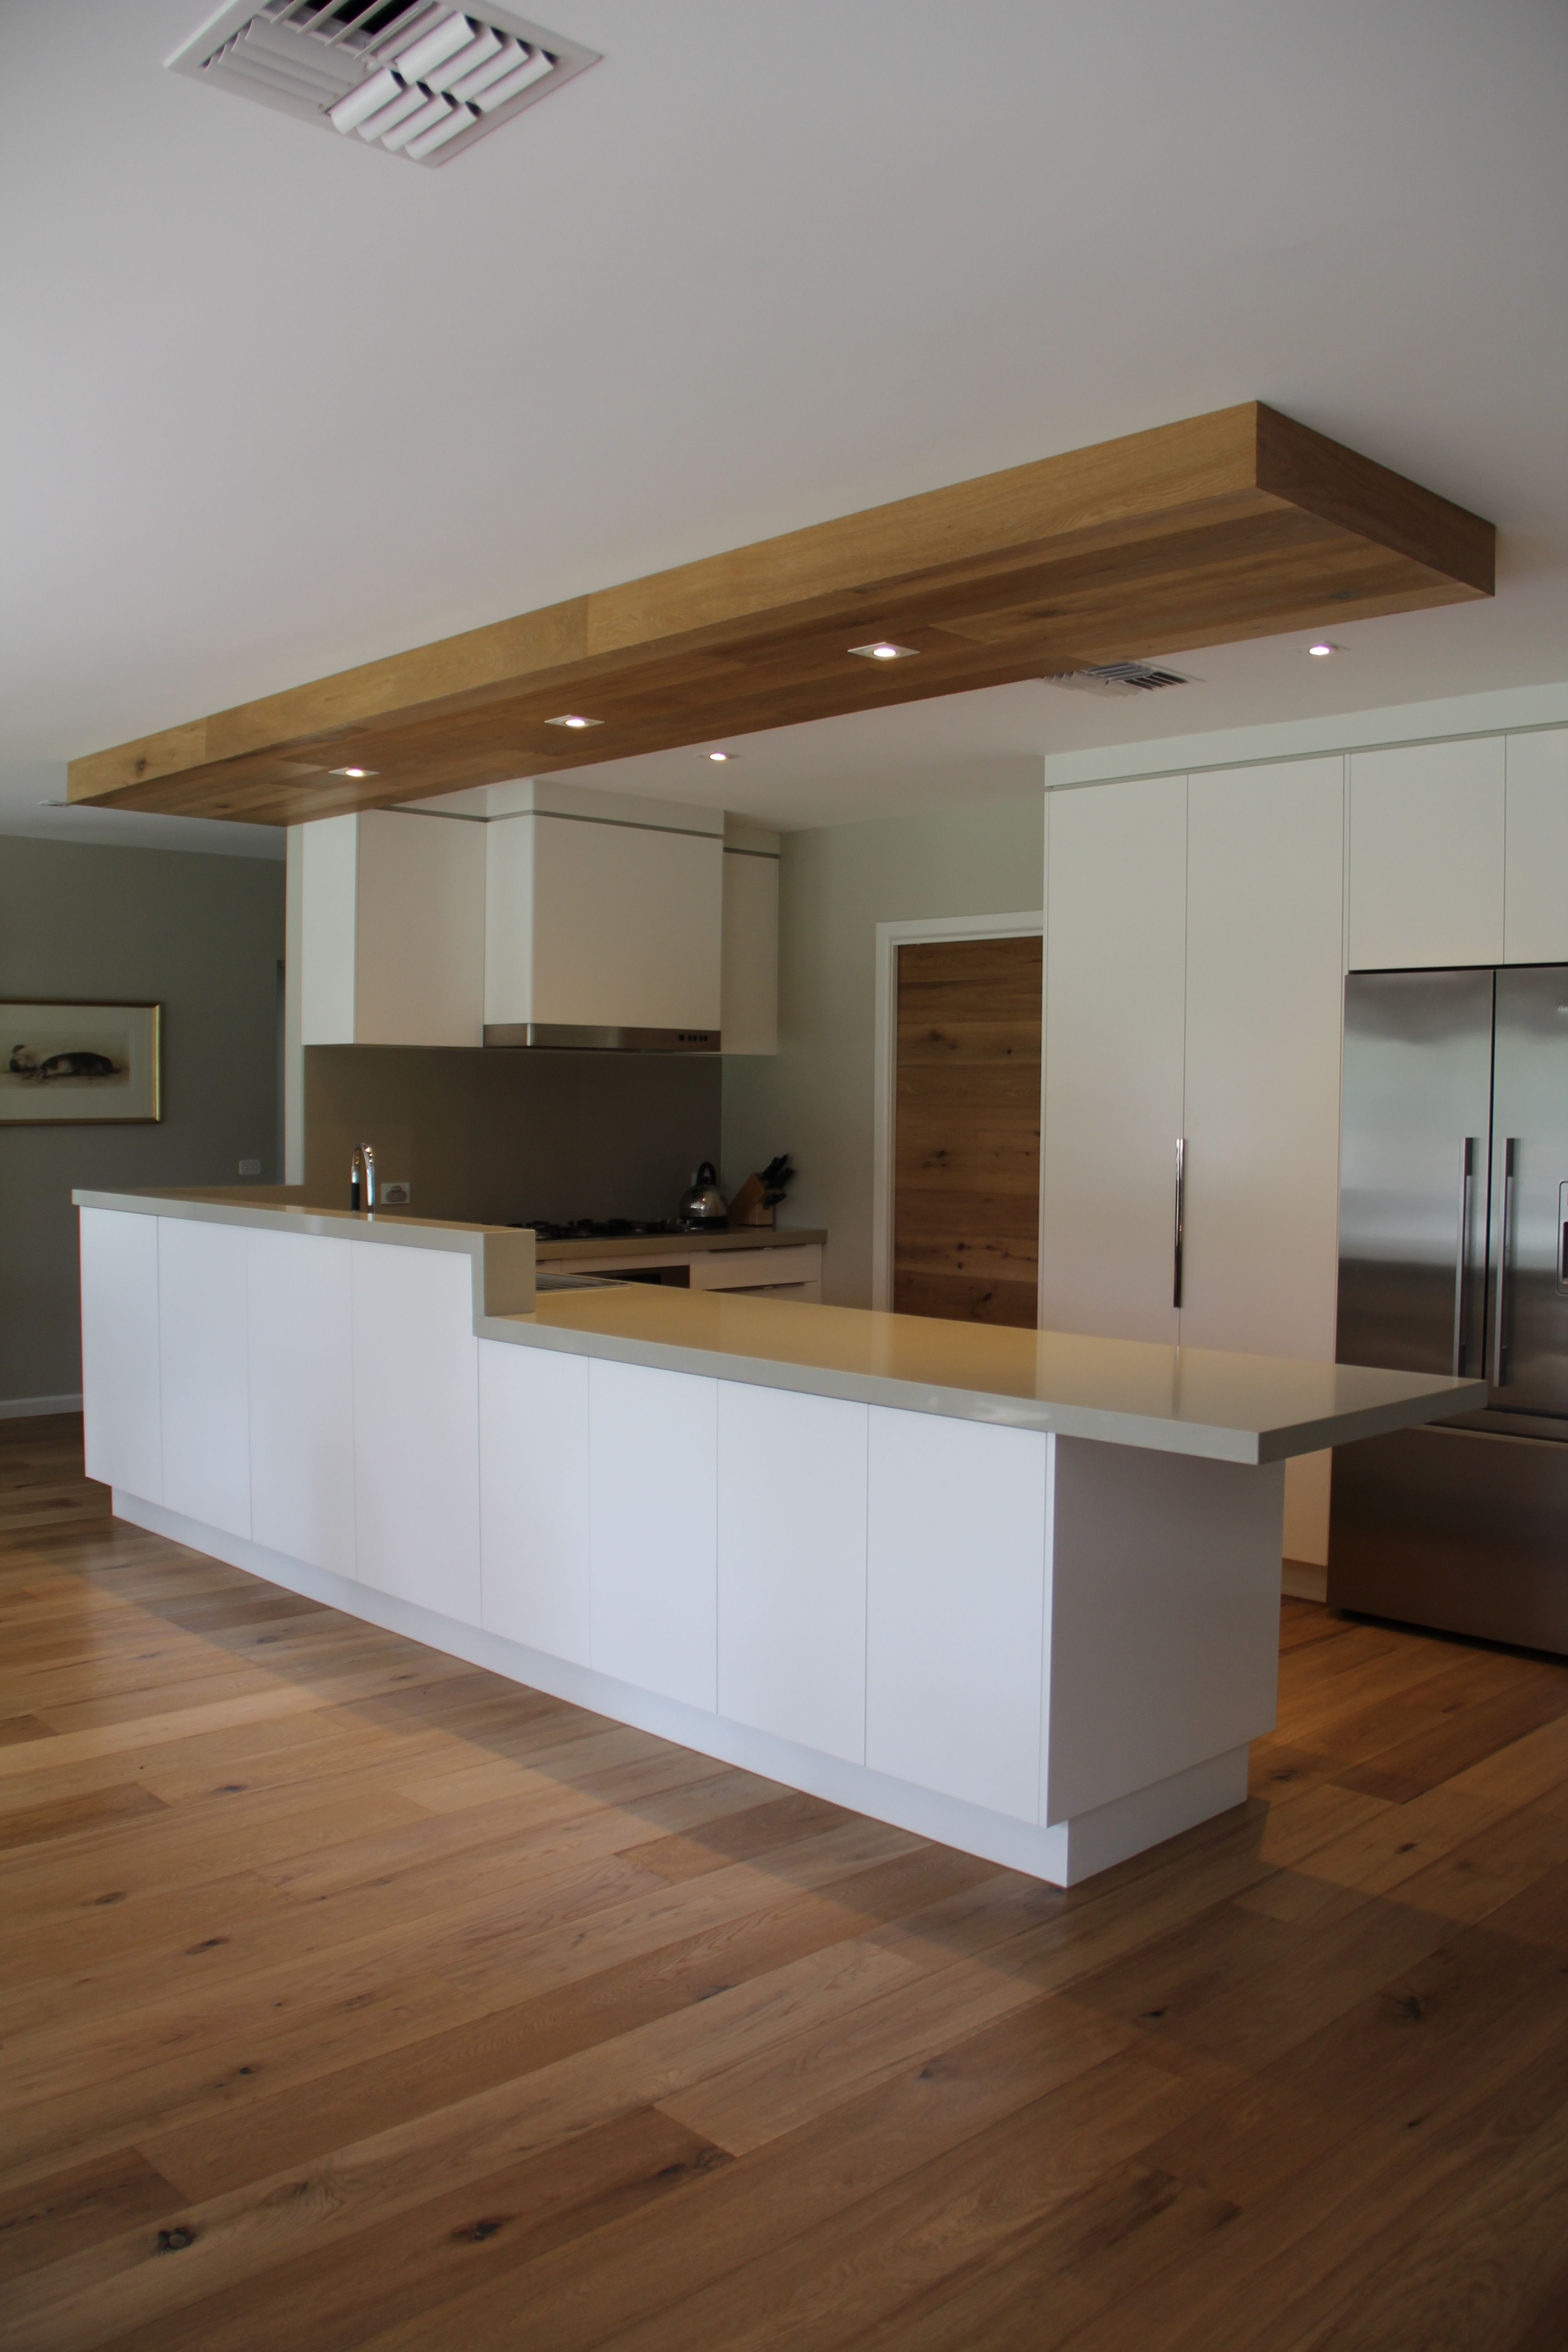 Kitchen Bulkhead Smoked American Oak Has Been Used In This Kitchen On Floors Doors